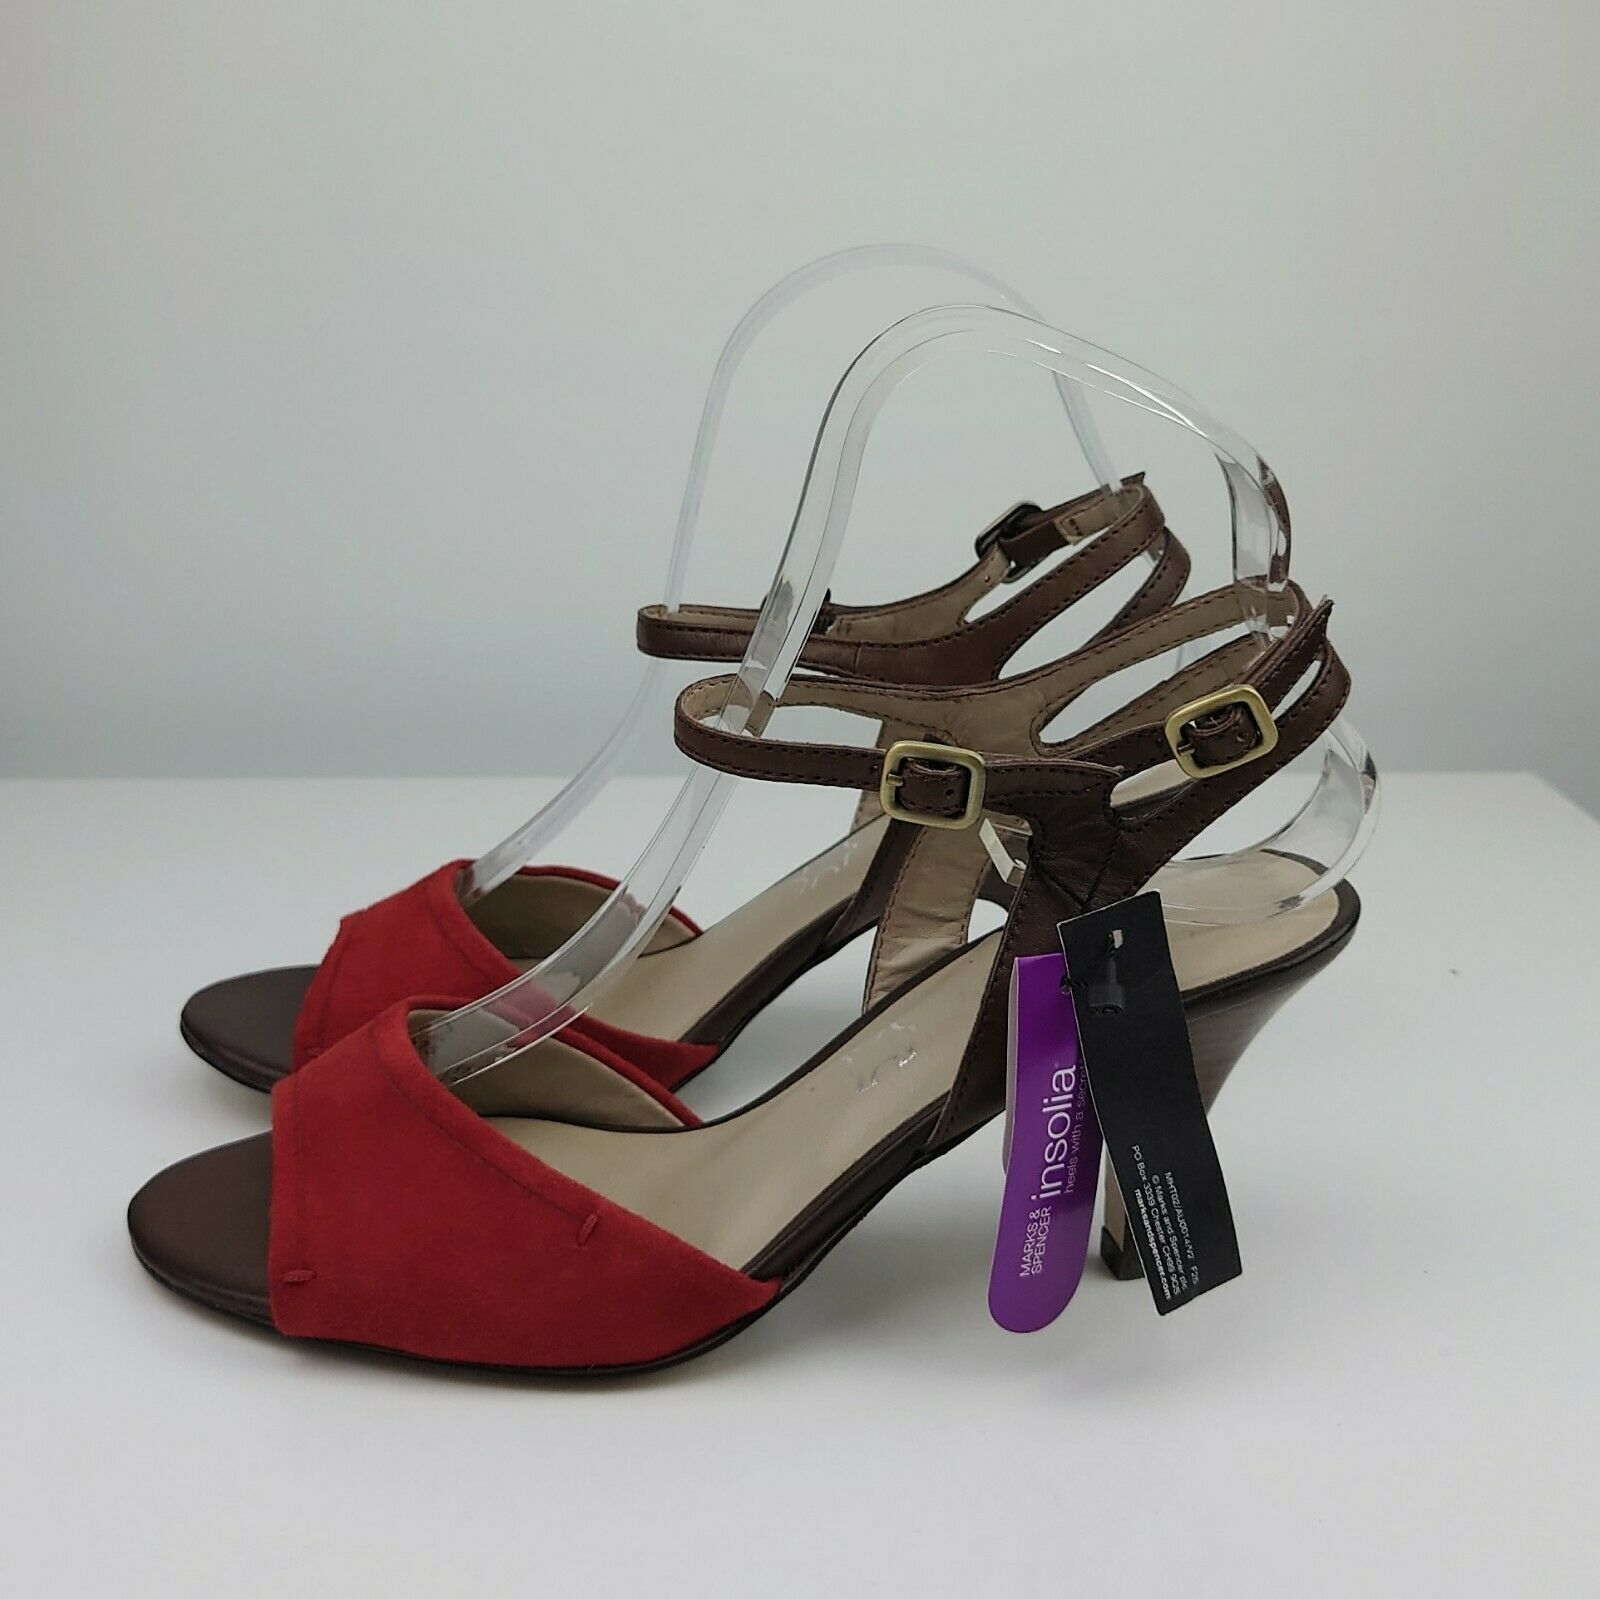 M&S Size 5.5 Brown Leather & Suede Strappy Heels Open Toe EUR 39 NEW with Tags